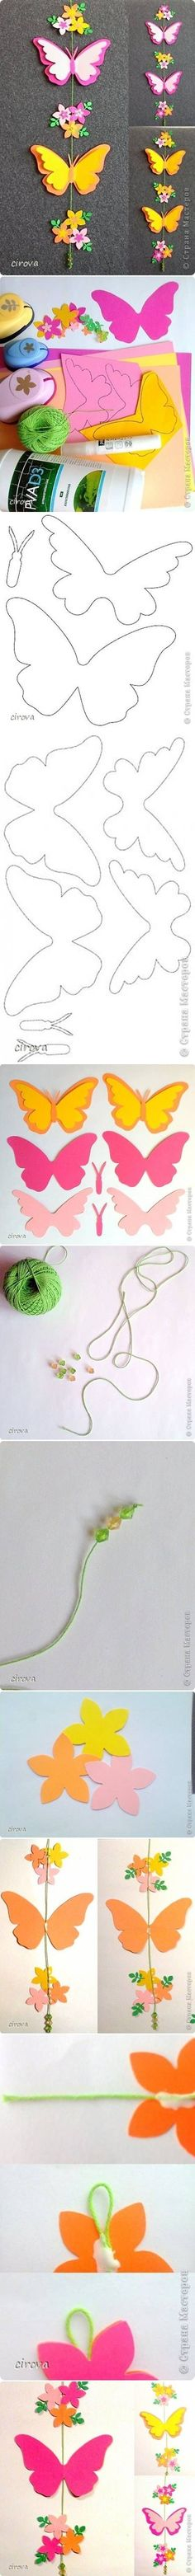 DIY Paper Butterfly Mobile by marjorie